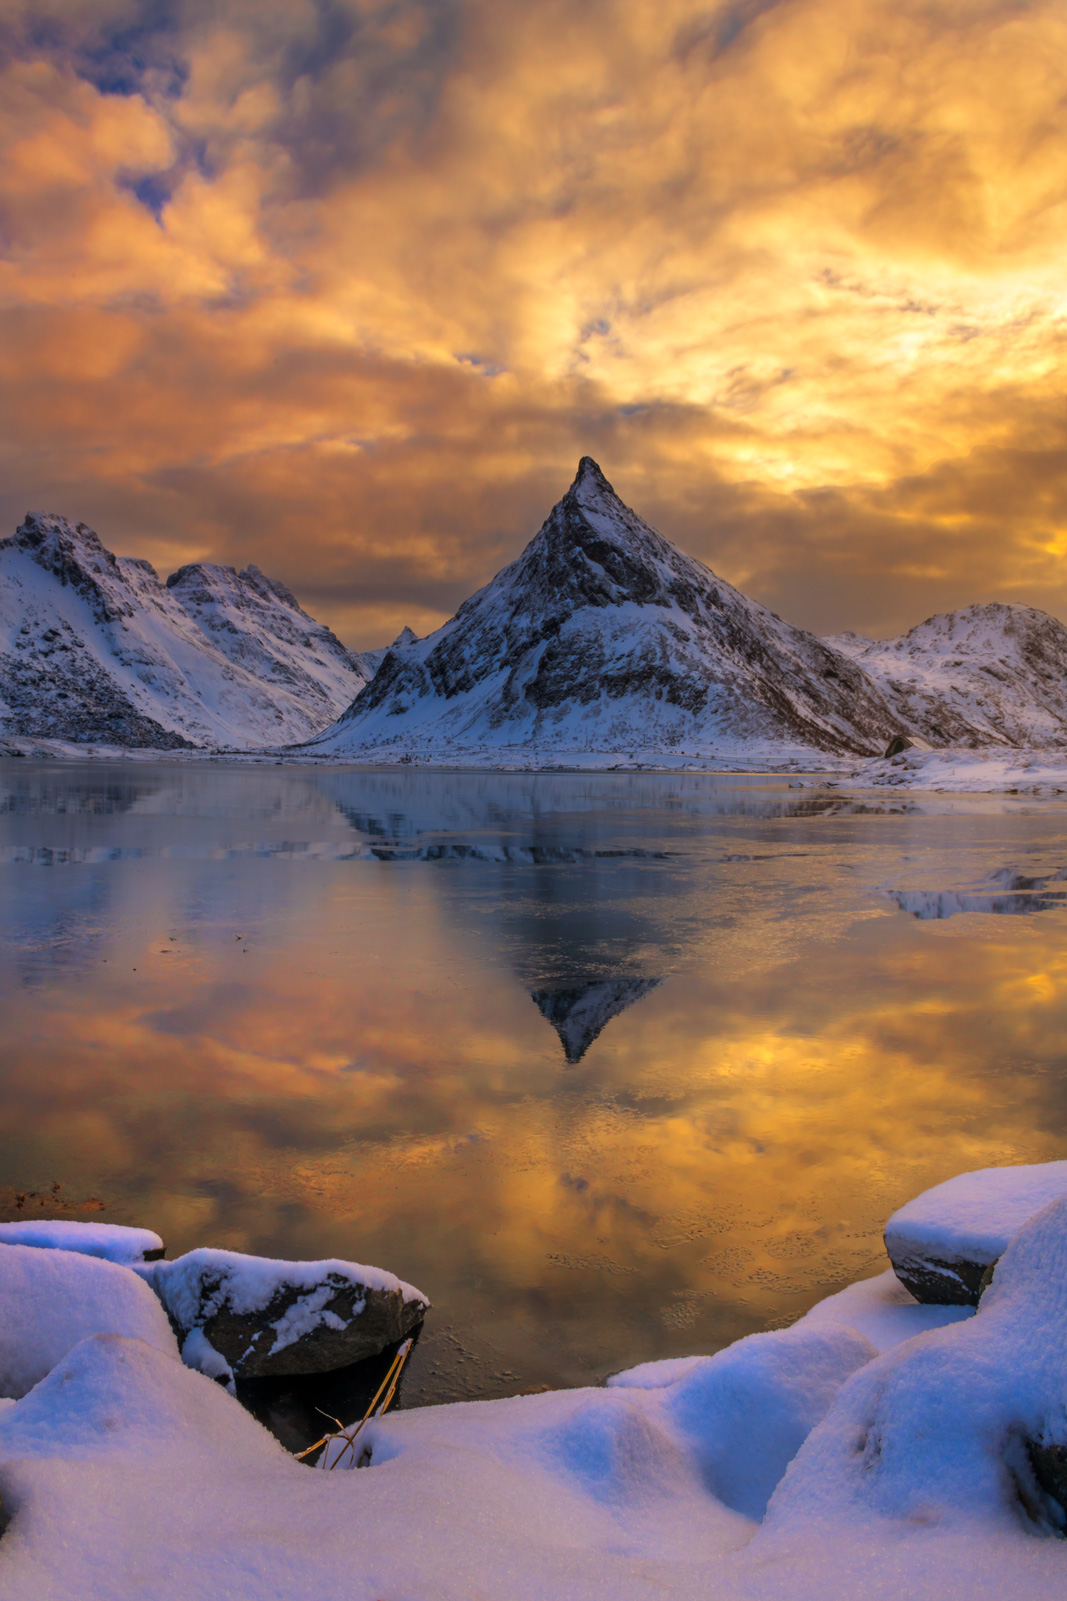 A Limited Edition, Fine Art photograph of the point of a snow covered mountain dramatically reflecting  in the water at sunset...